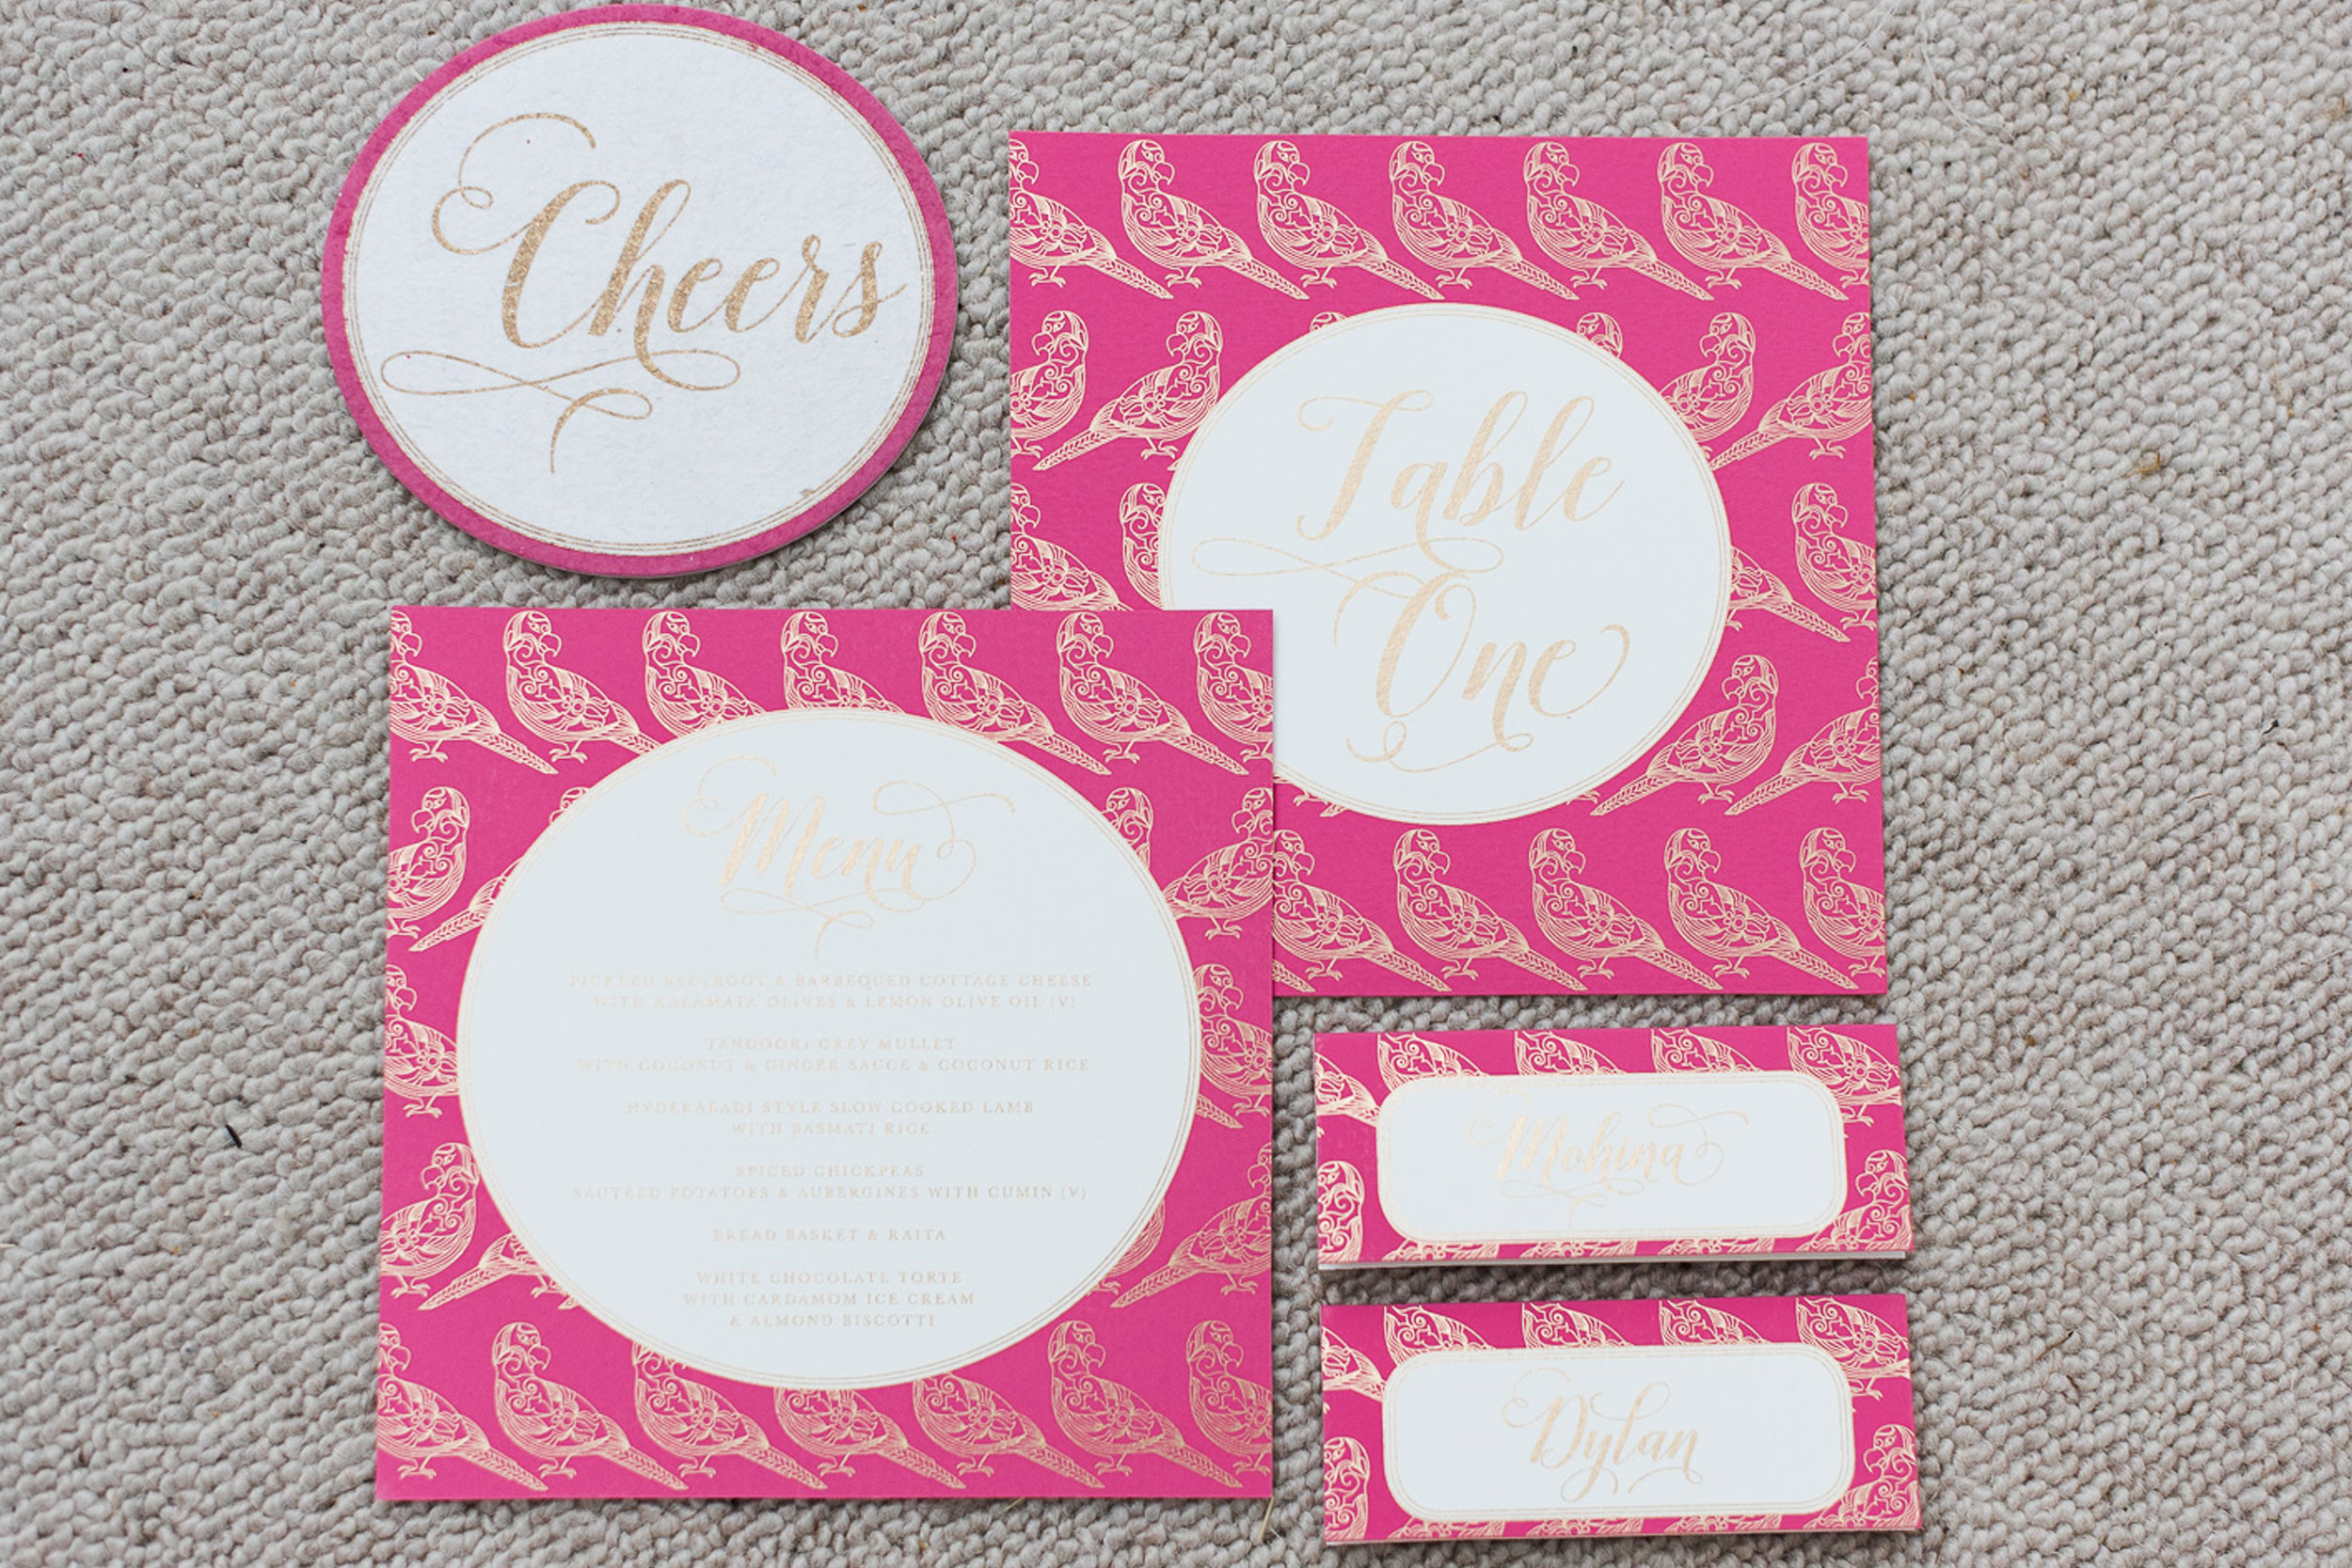 trio-of-life-pink-parrot-table-number-and-coaster-wedding-invitation.jpg